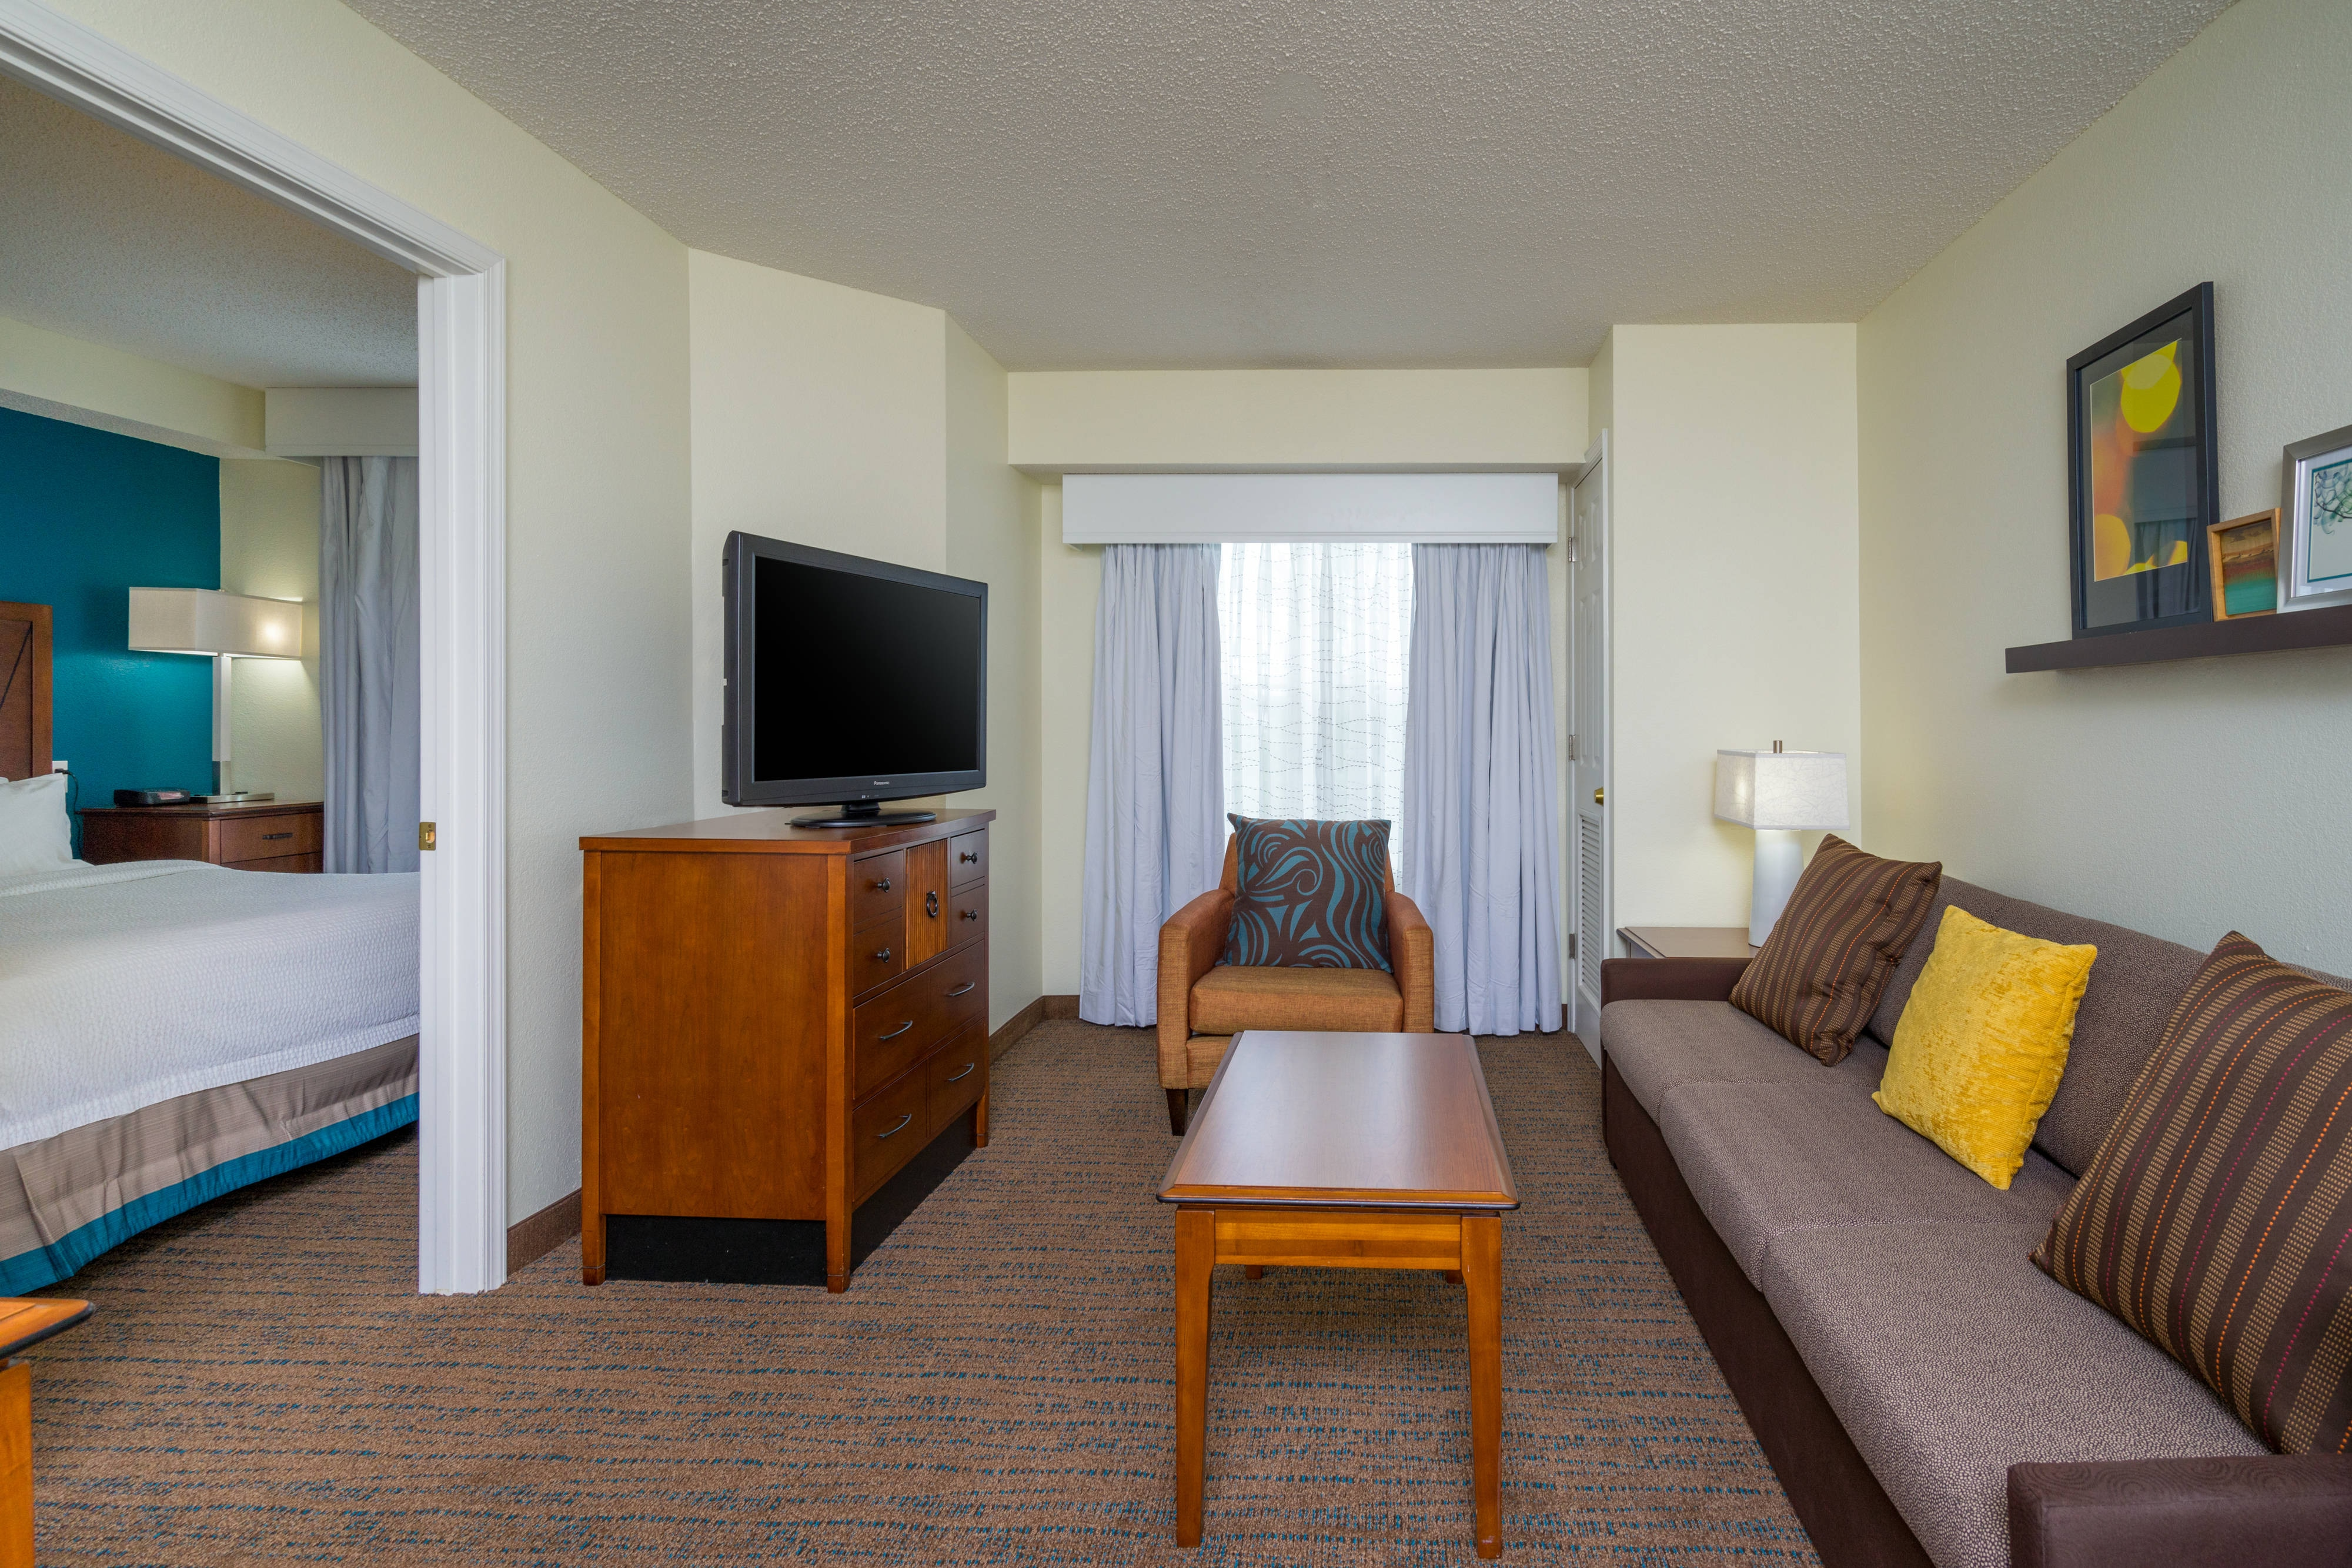 hotels in toronto bedroom rooms hotel suites room highlights amenities residence suite markham orleans yyzmh and inn hor new clsc